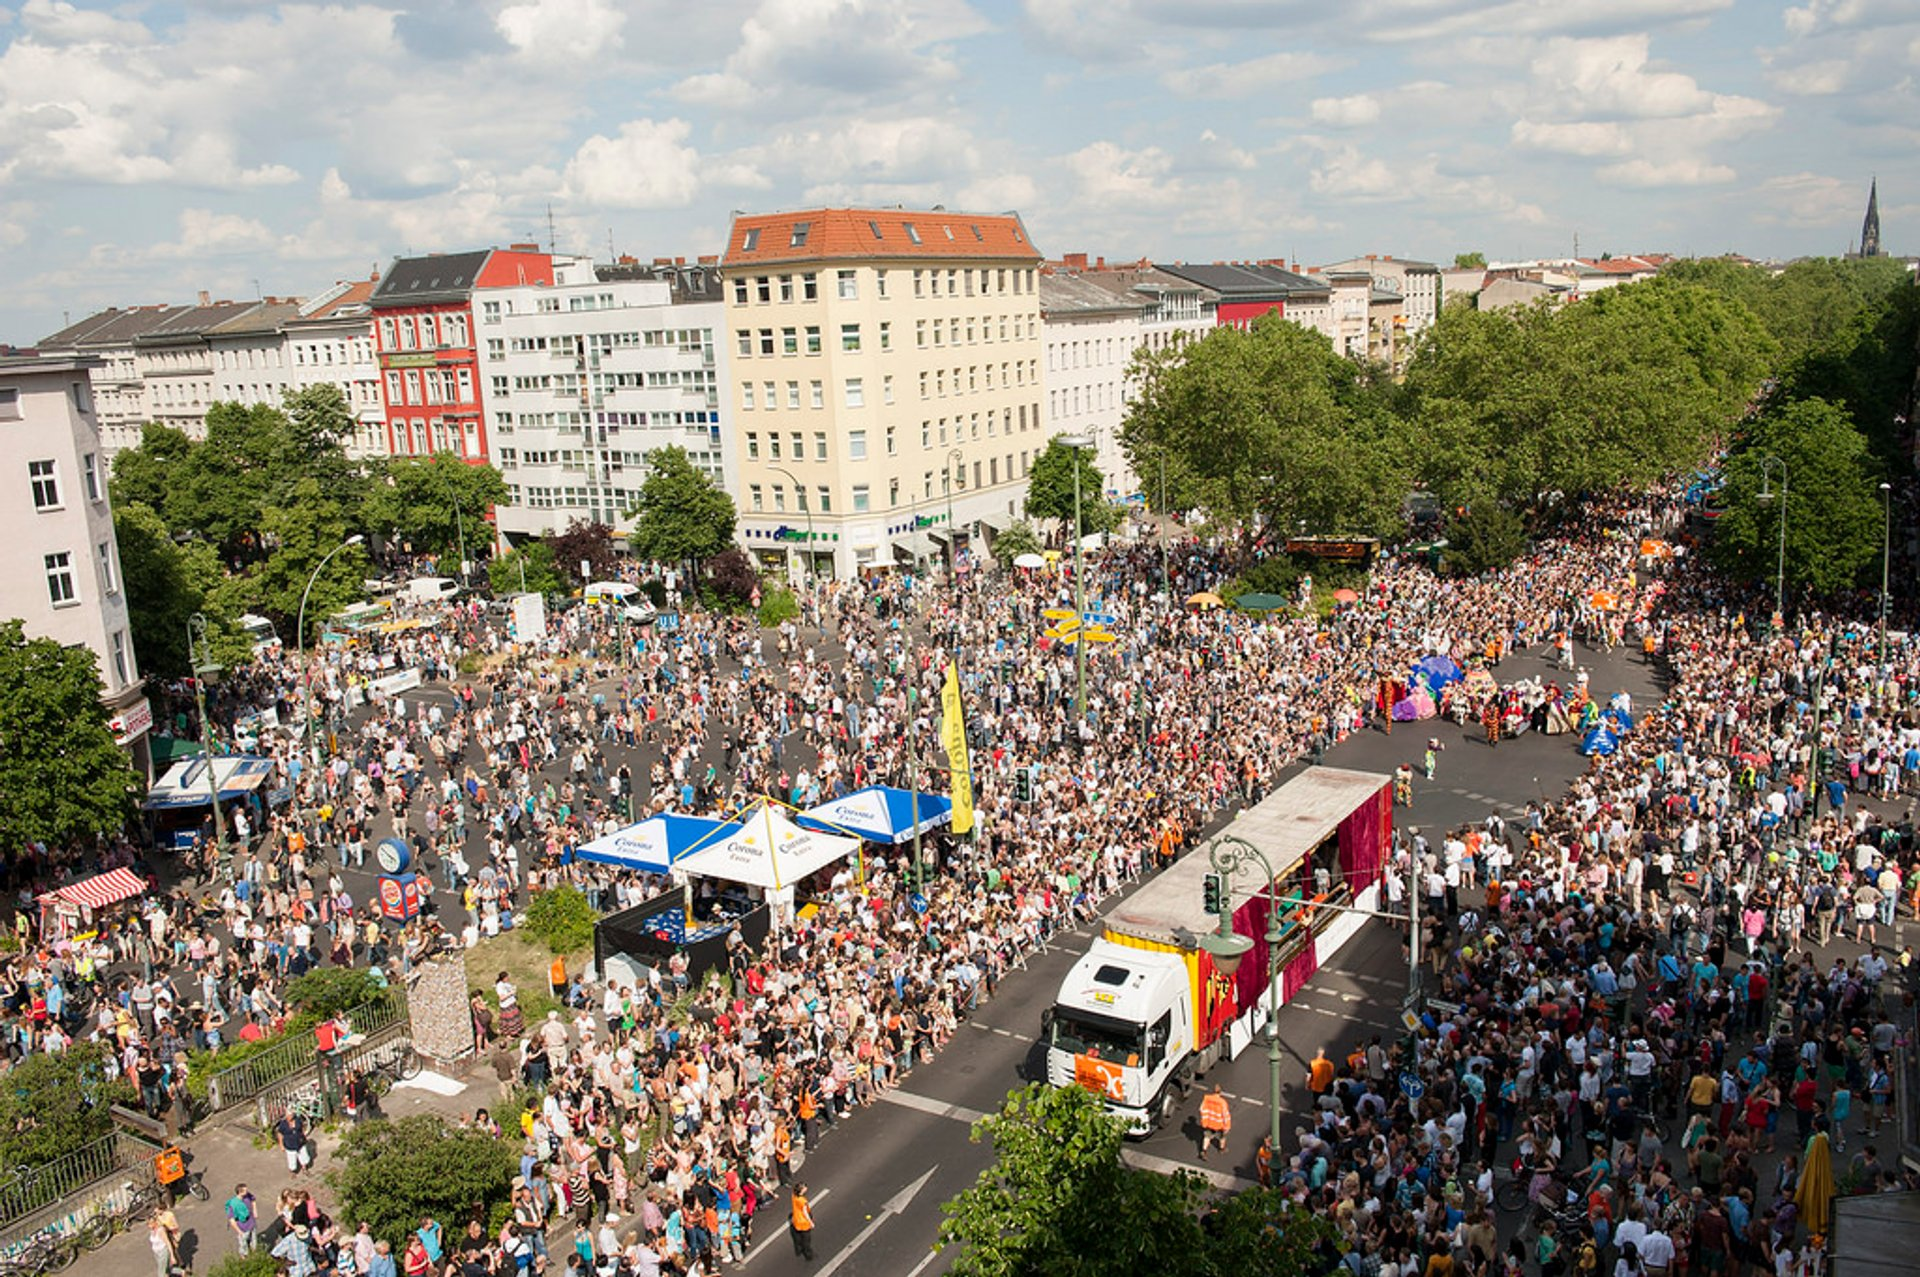 Carnival of Cultures in Berlin - Best Season 2019